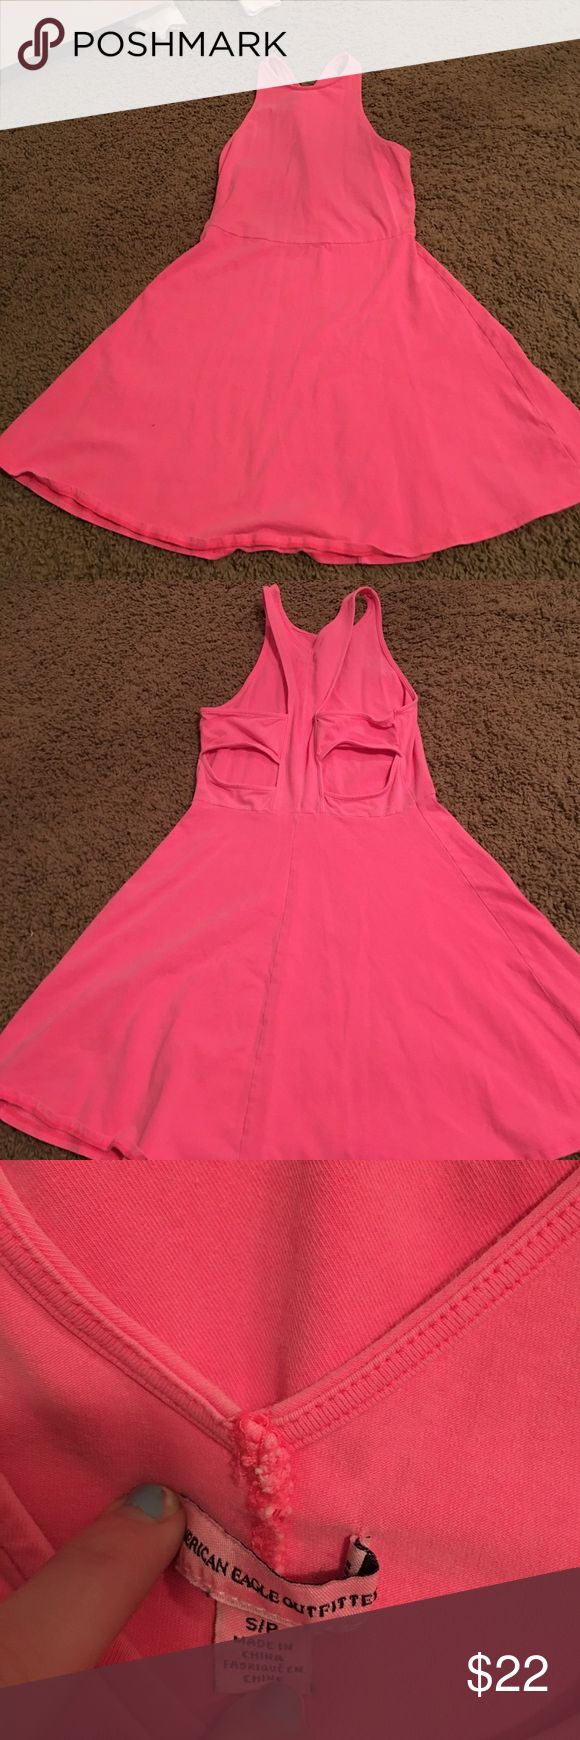 American Eagle neon pink sundress Very cute! Has an open back detail. Tight up top, but bottom flows out like skirt! Size small. Never worn. American Eagle Outfitters Dresses Backless